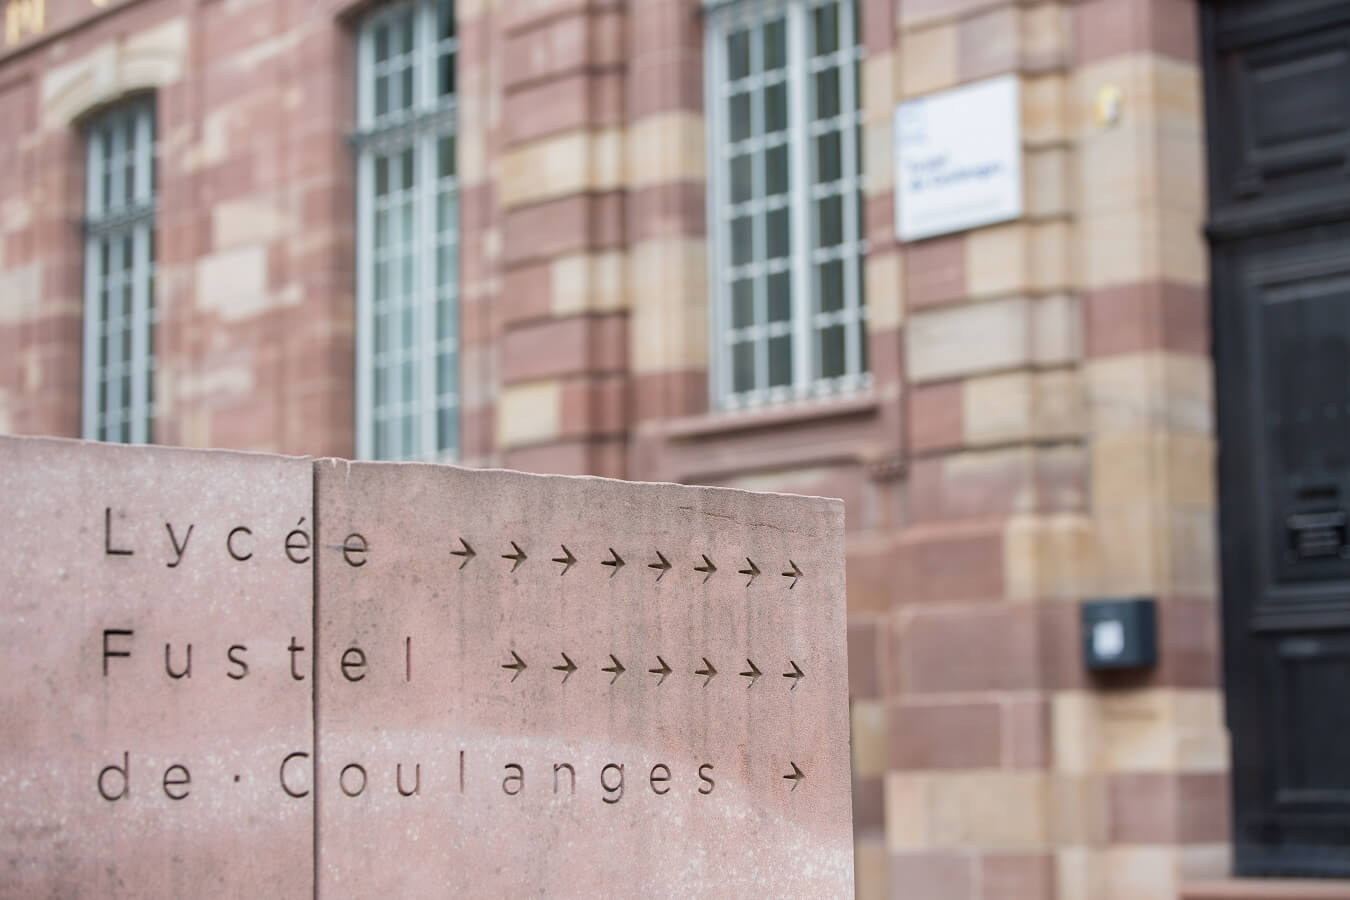 Lycee_FD_Coulanges_